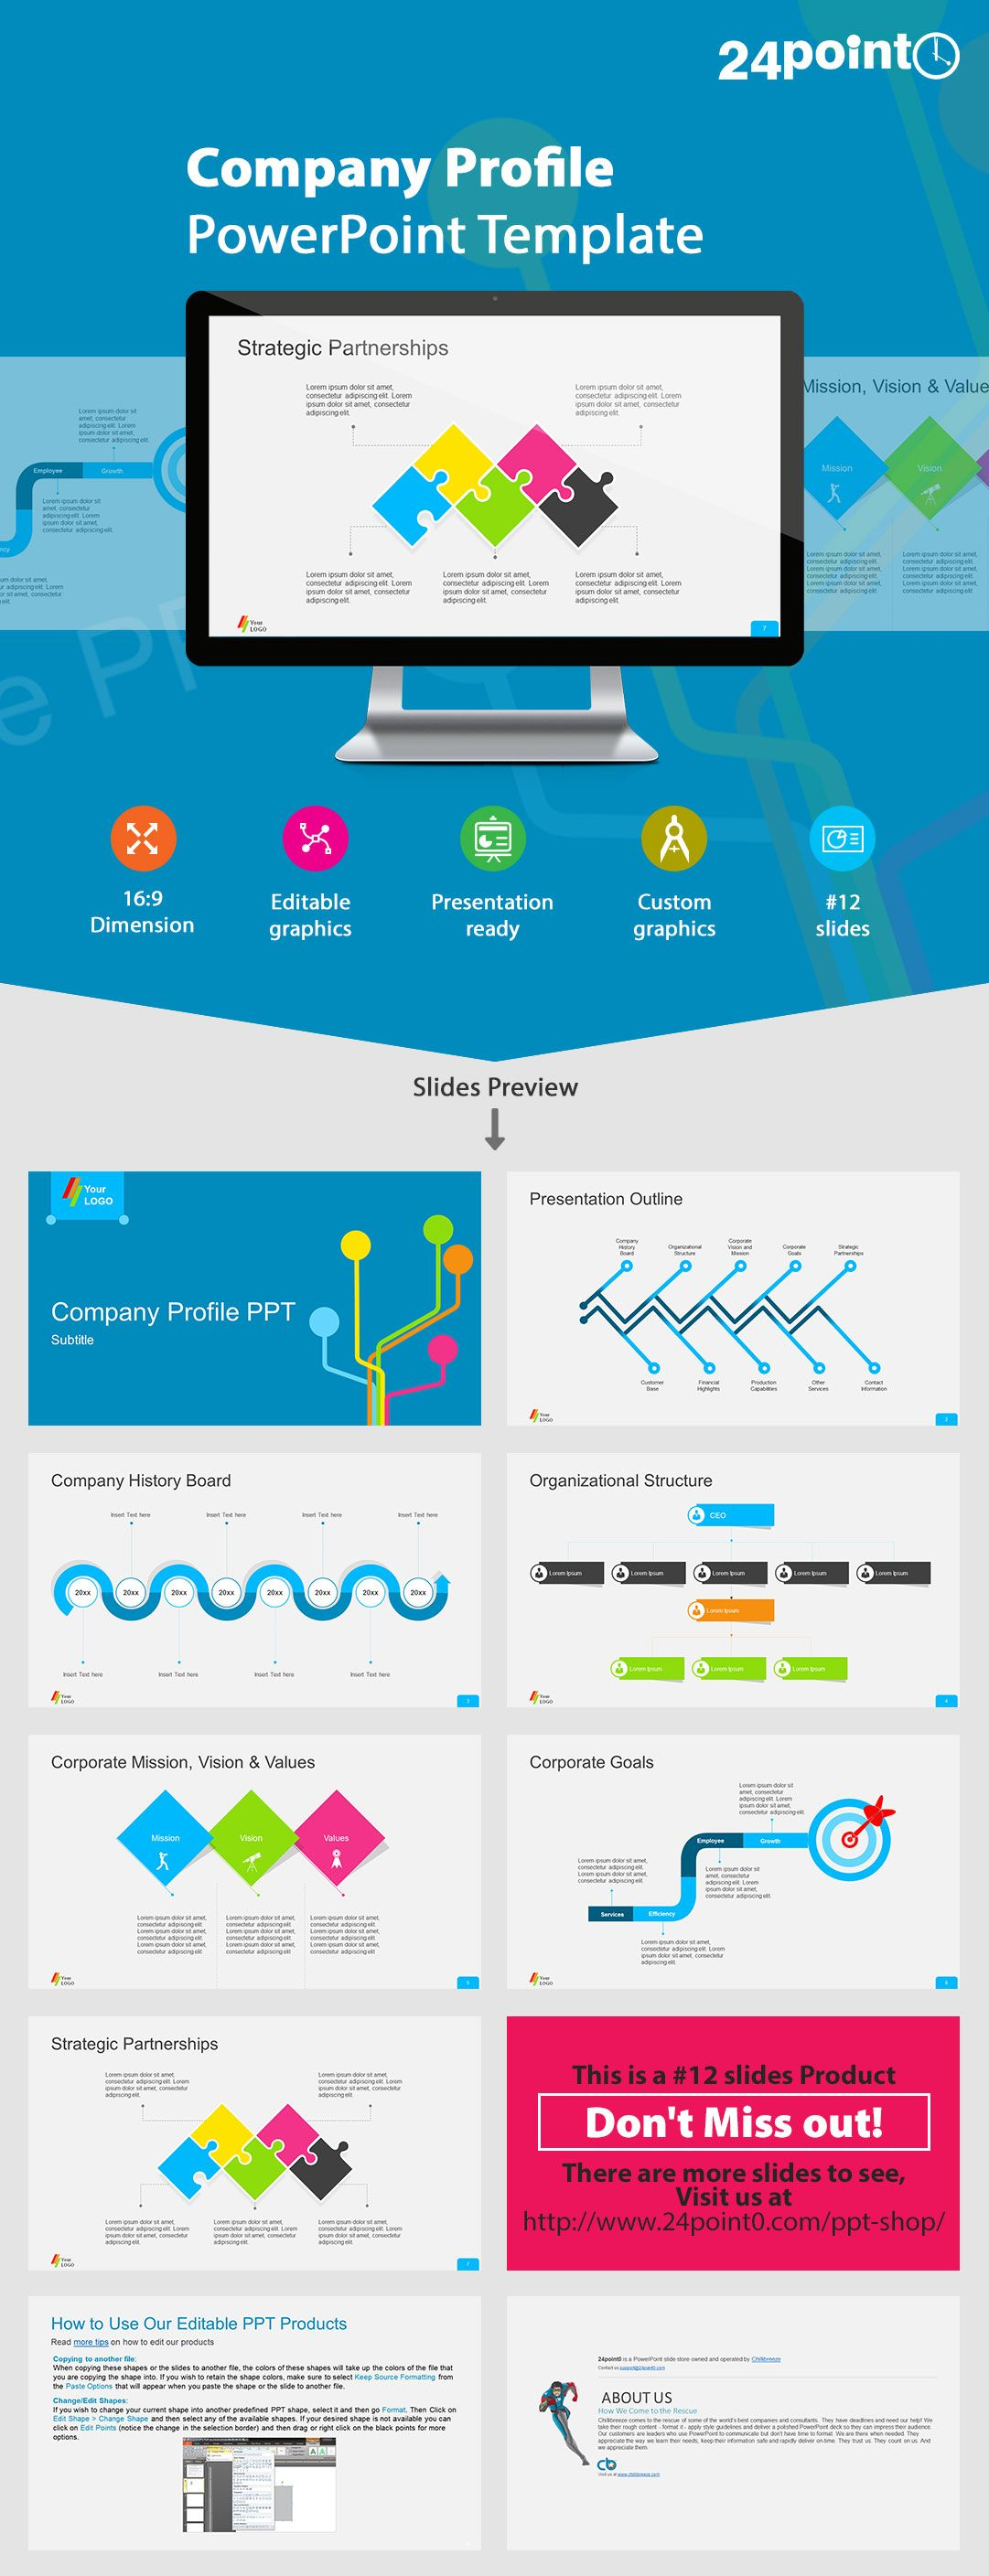 Company Profile Powerpoint Template Use This Template To Make An